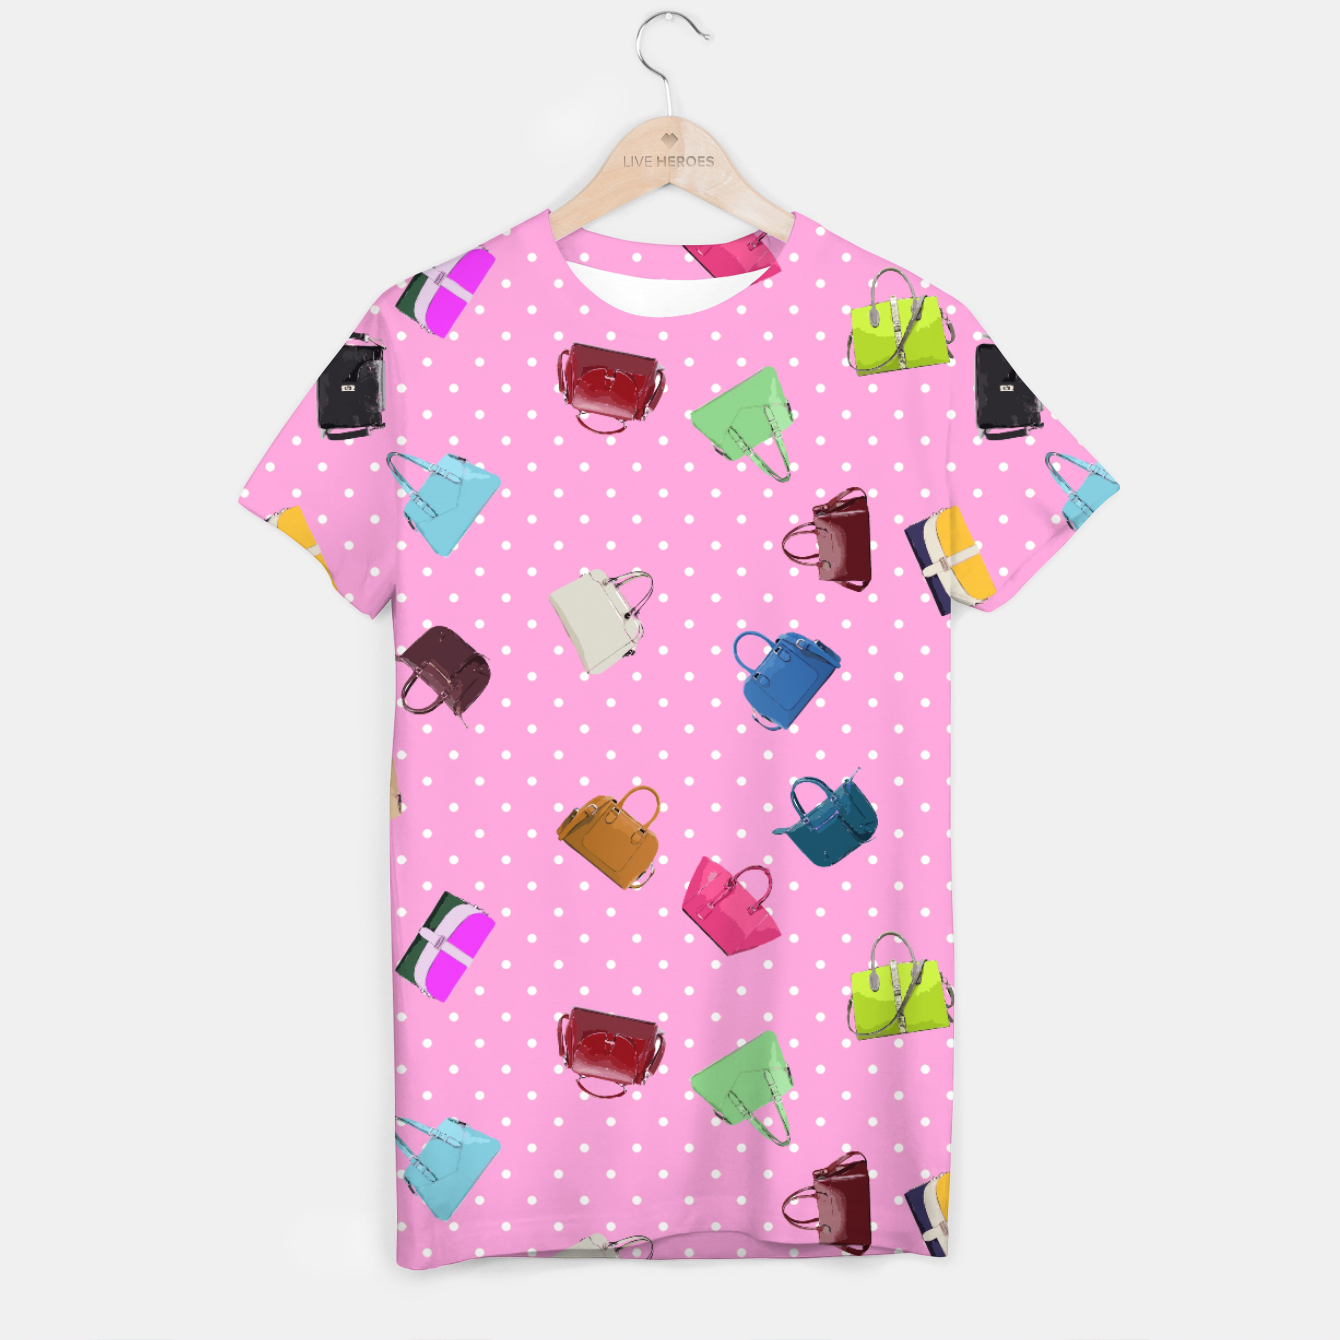 Image of Purses, Polka Dots and Pink Background T-shirt - Live Heroes